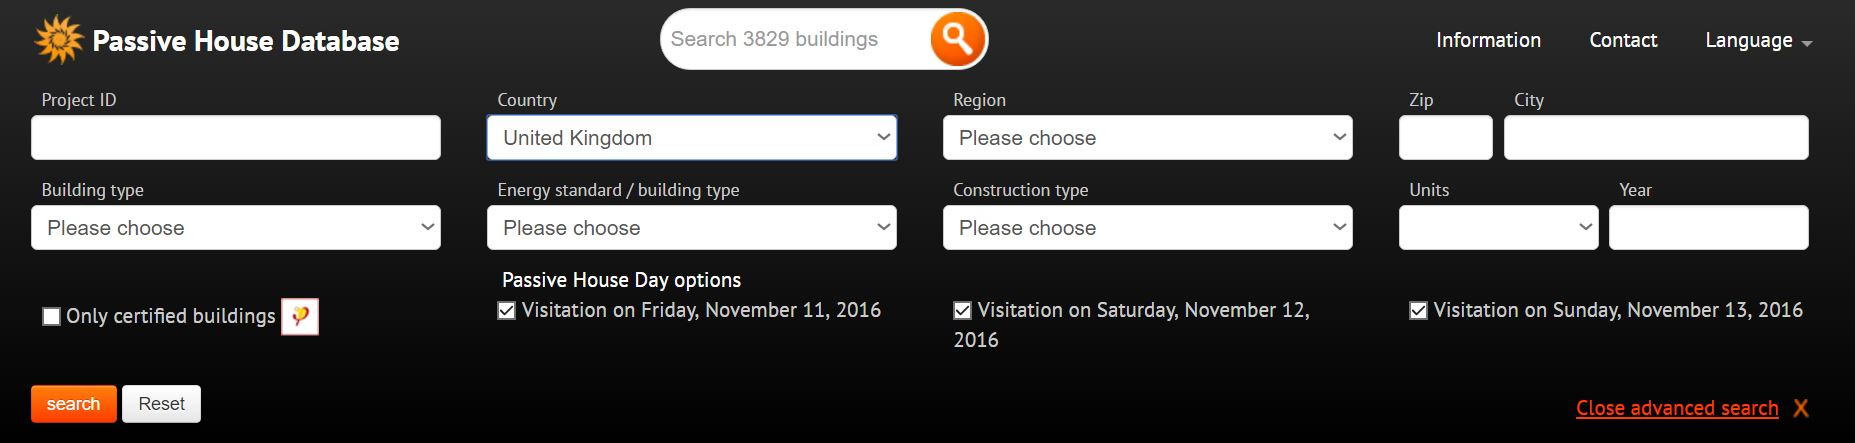 International Passivhaus Buildings Database advanced search